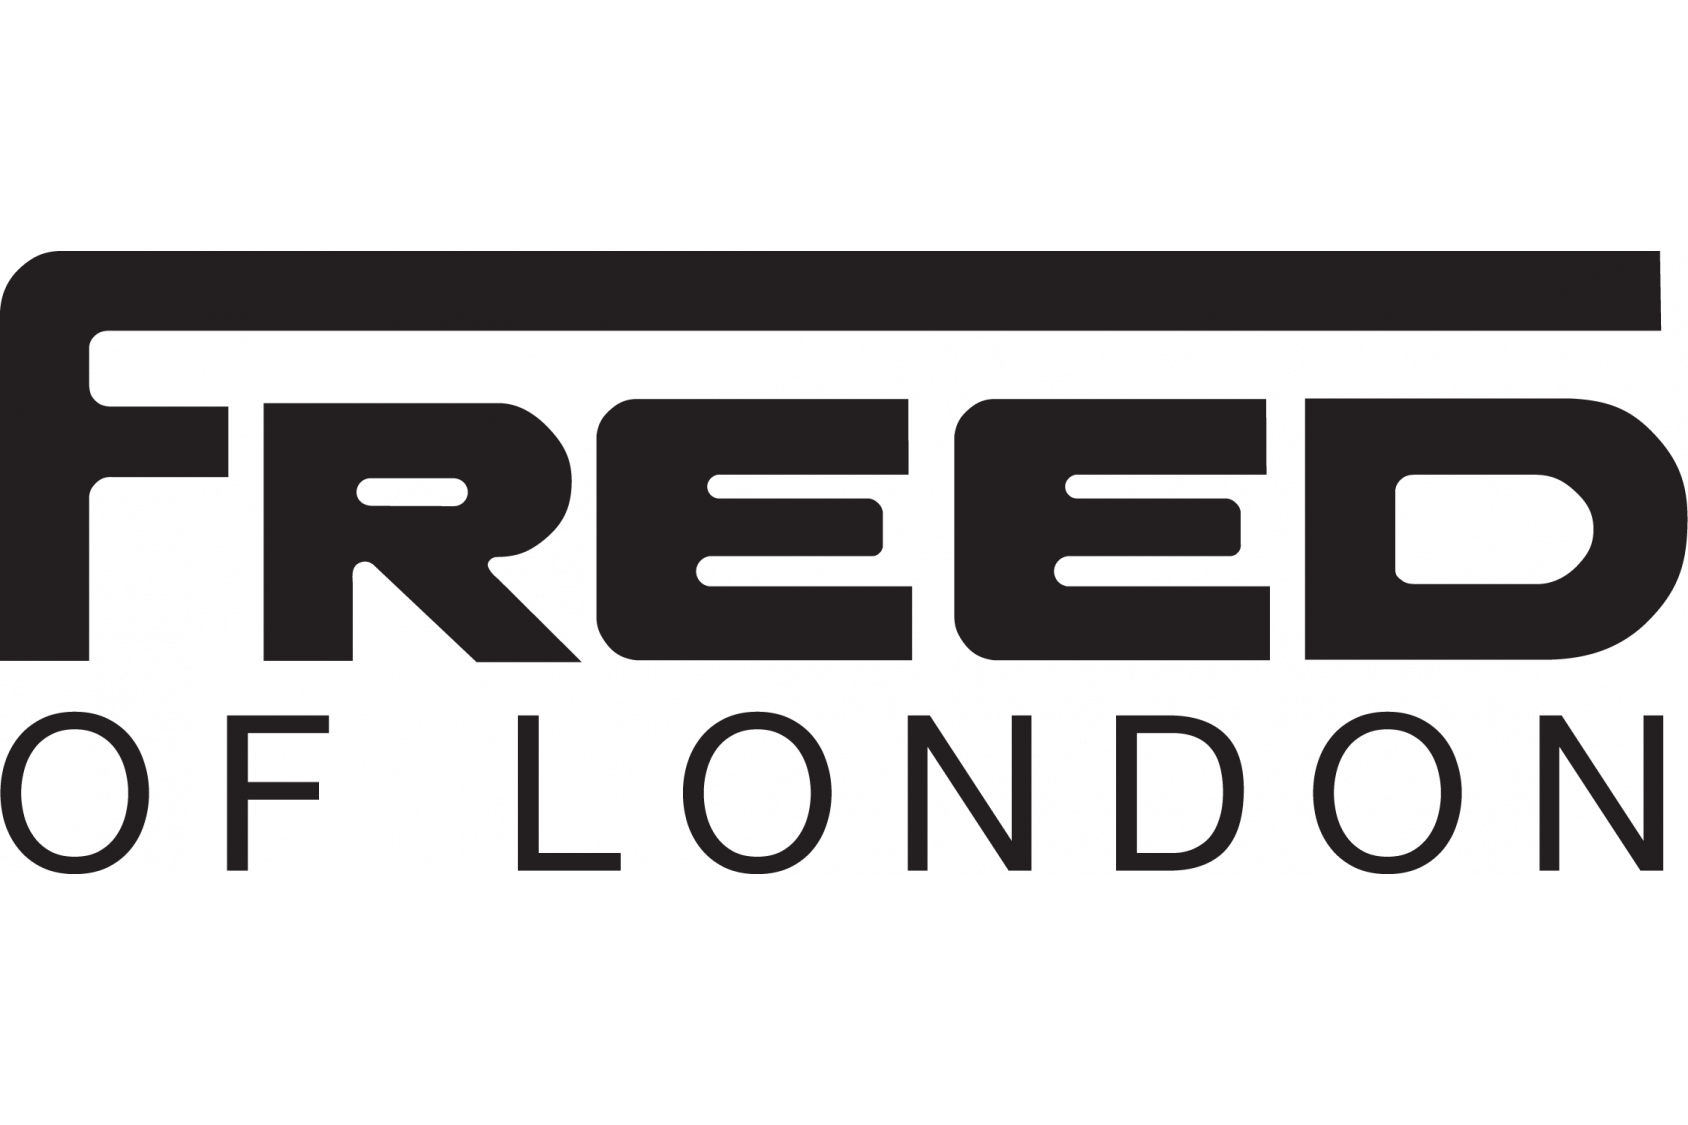 Freed of London : exigez la plus haute qualité de pointes